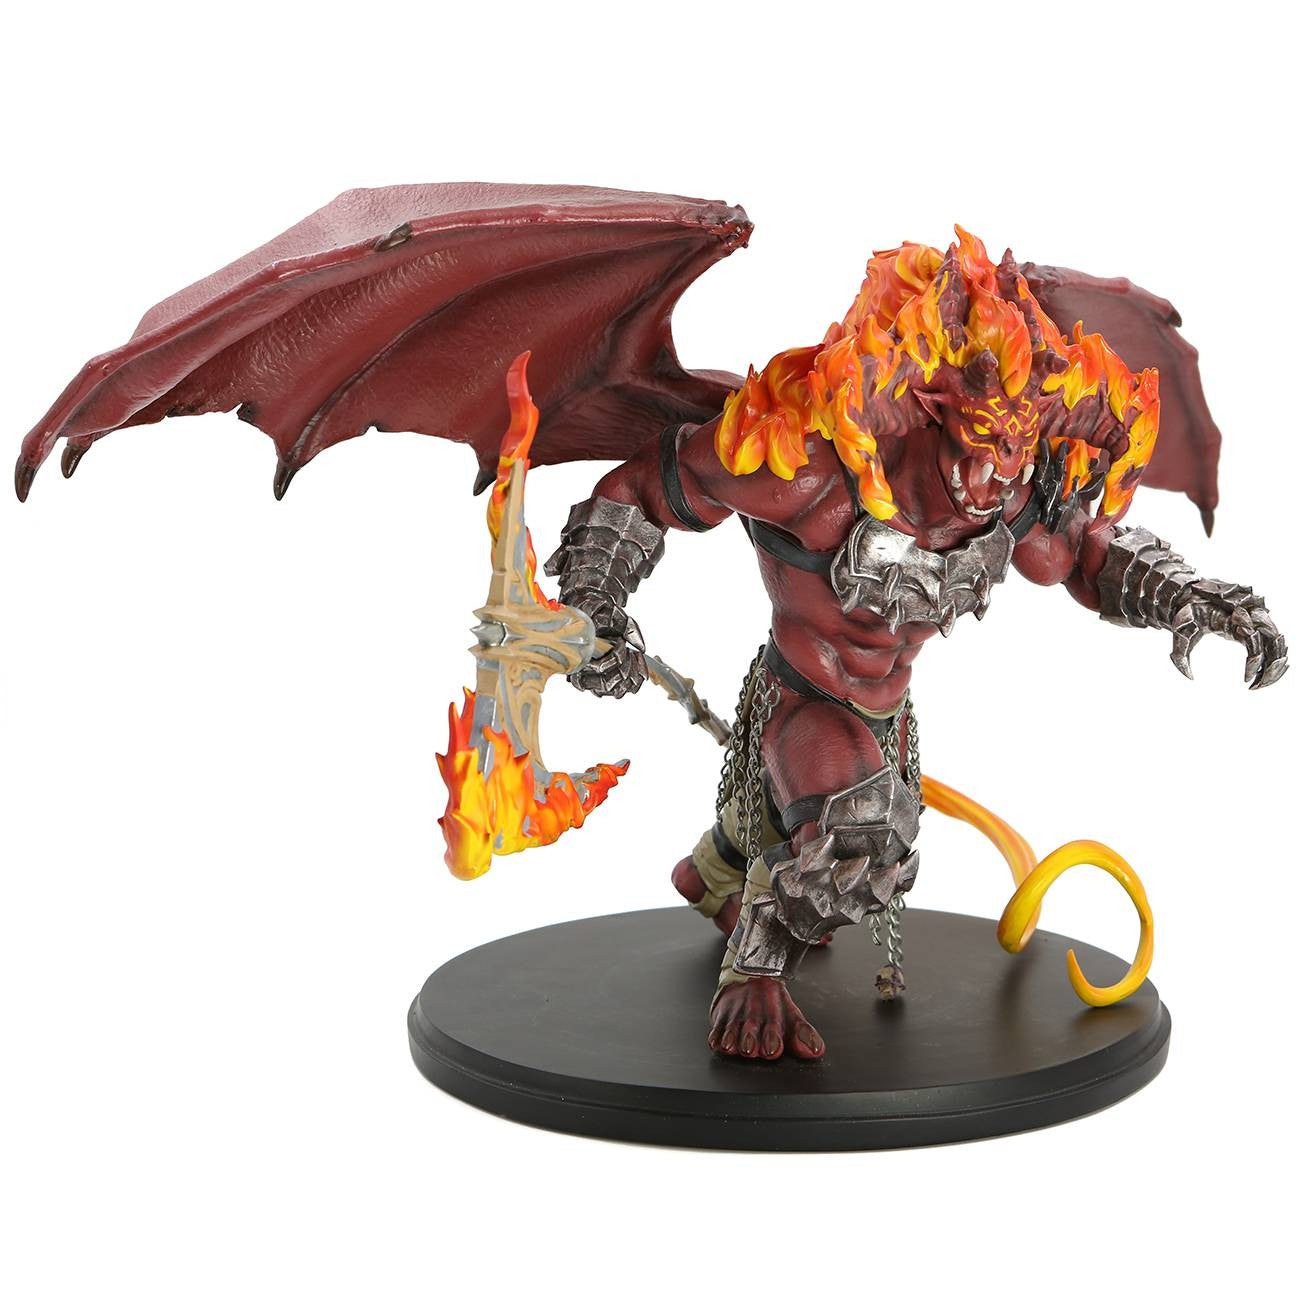 Belaphoss Statue w/ Digital Deluxe Sword Coast Legends